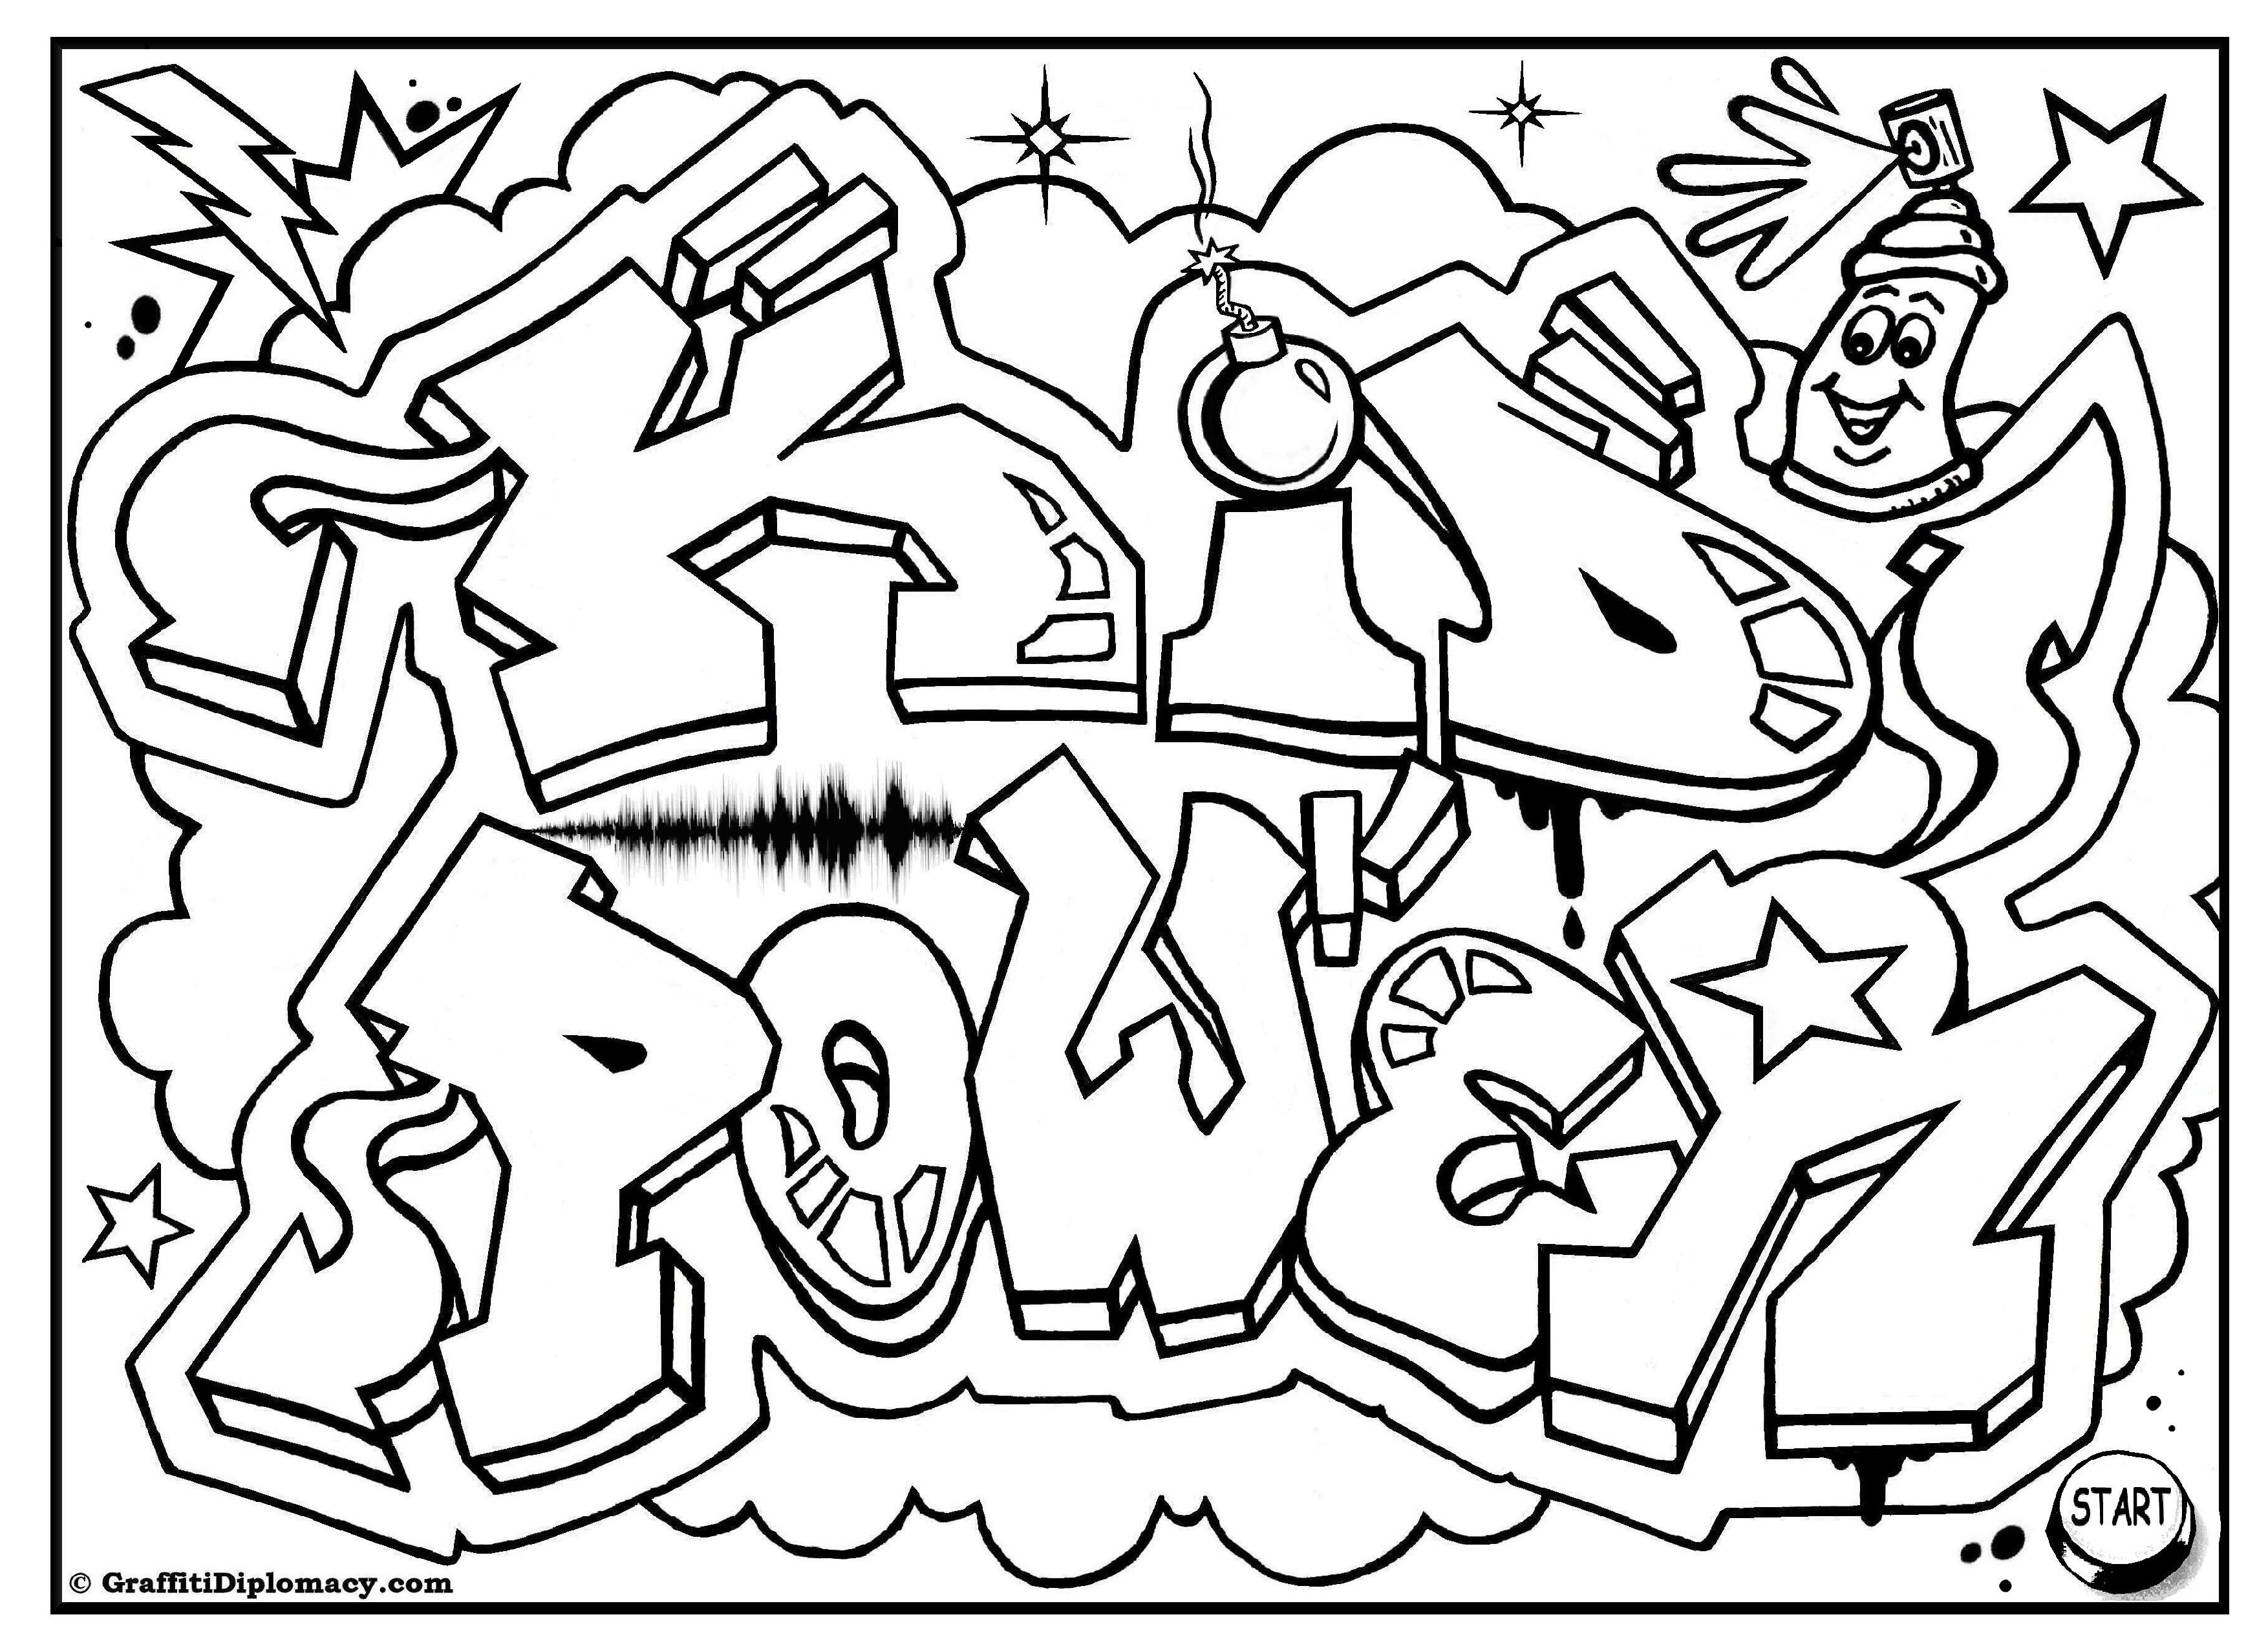 3508x2552 Kid Power Free Graffiti Coloring Page, Free Printable, Colouring